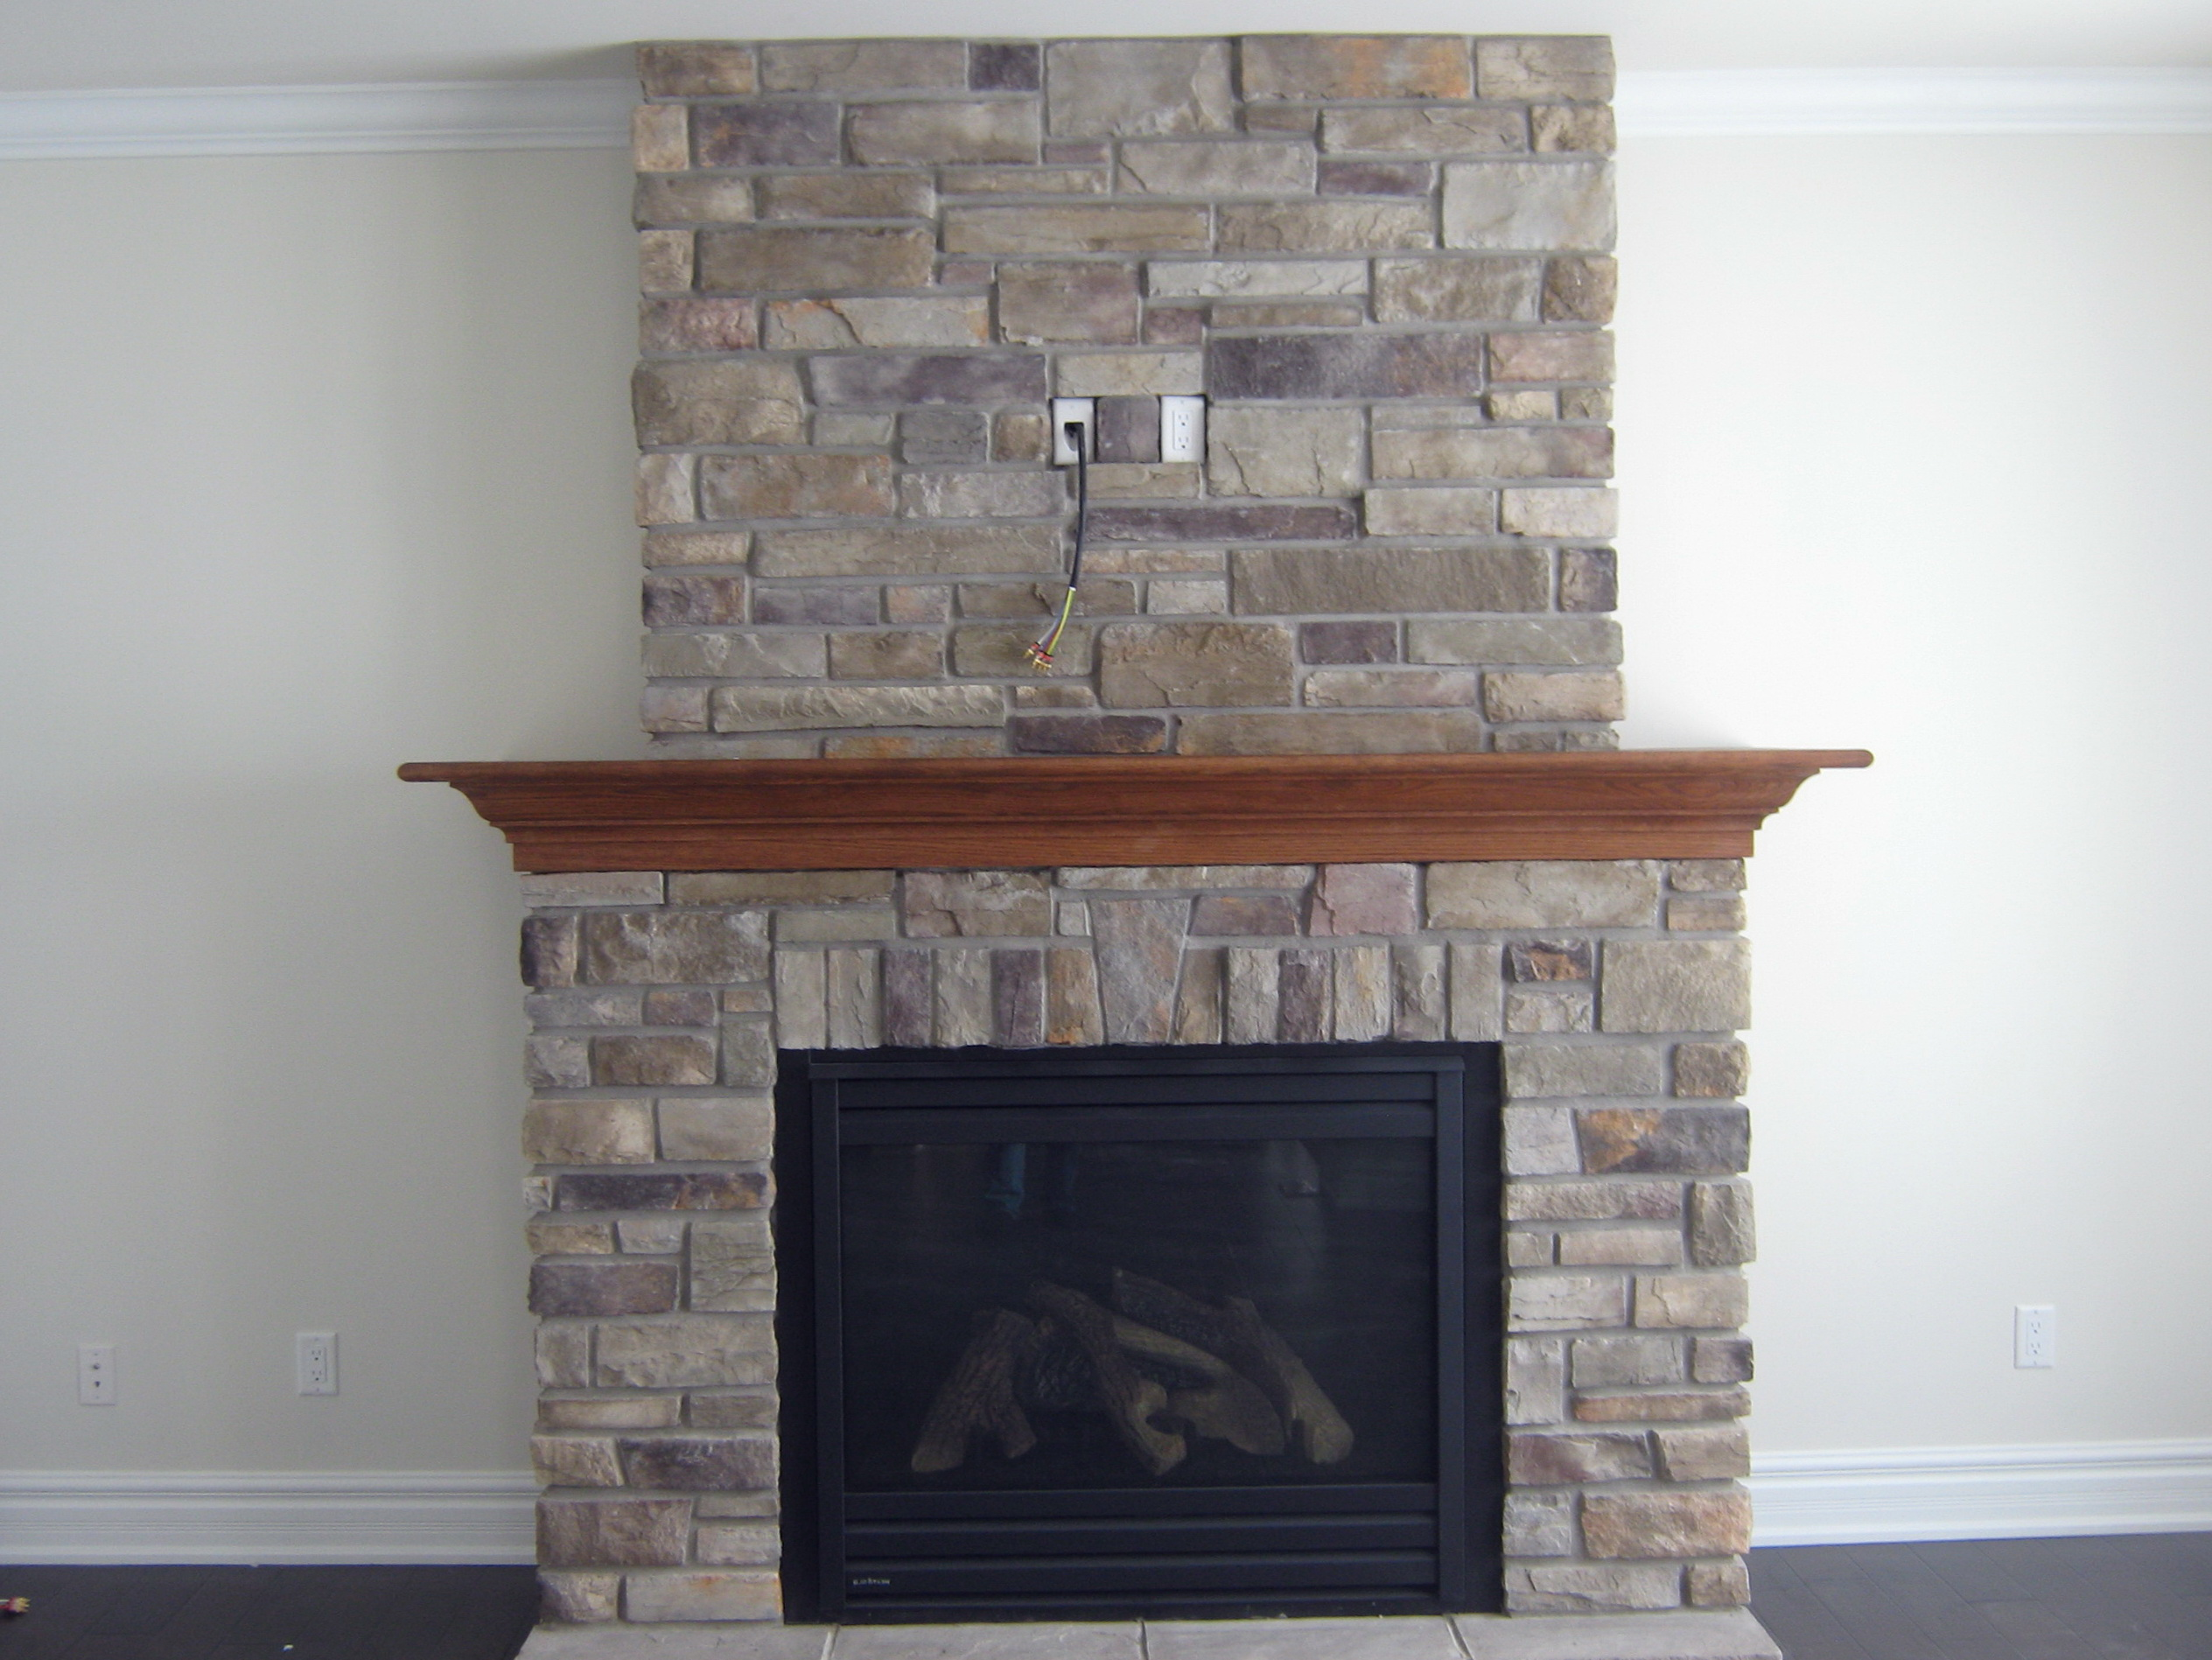 likable ideas uncategorized houzz pictures decorating corner additional remodeling with modern pinterest decor stone in gas fireplace deep fantasticrner